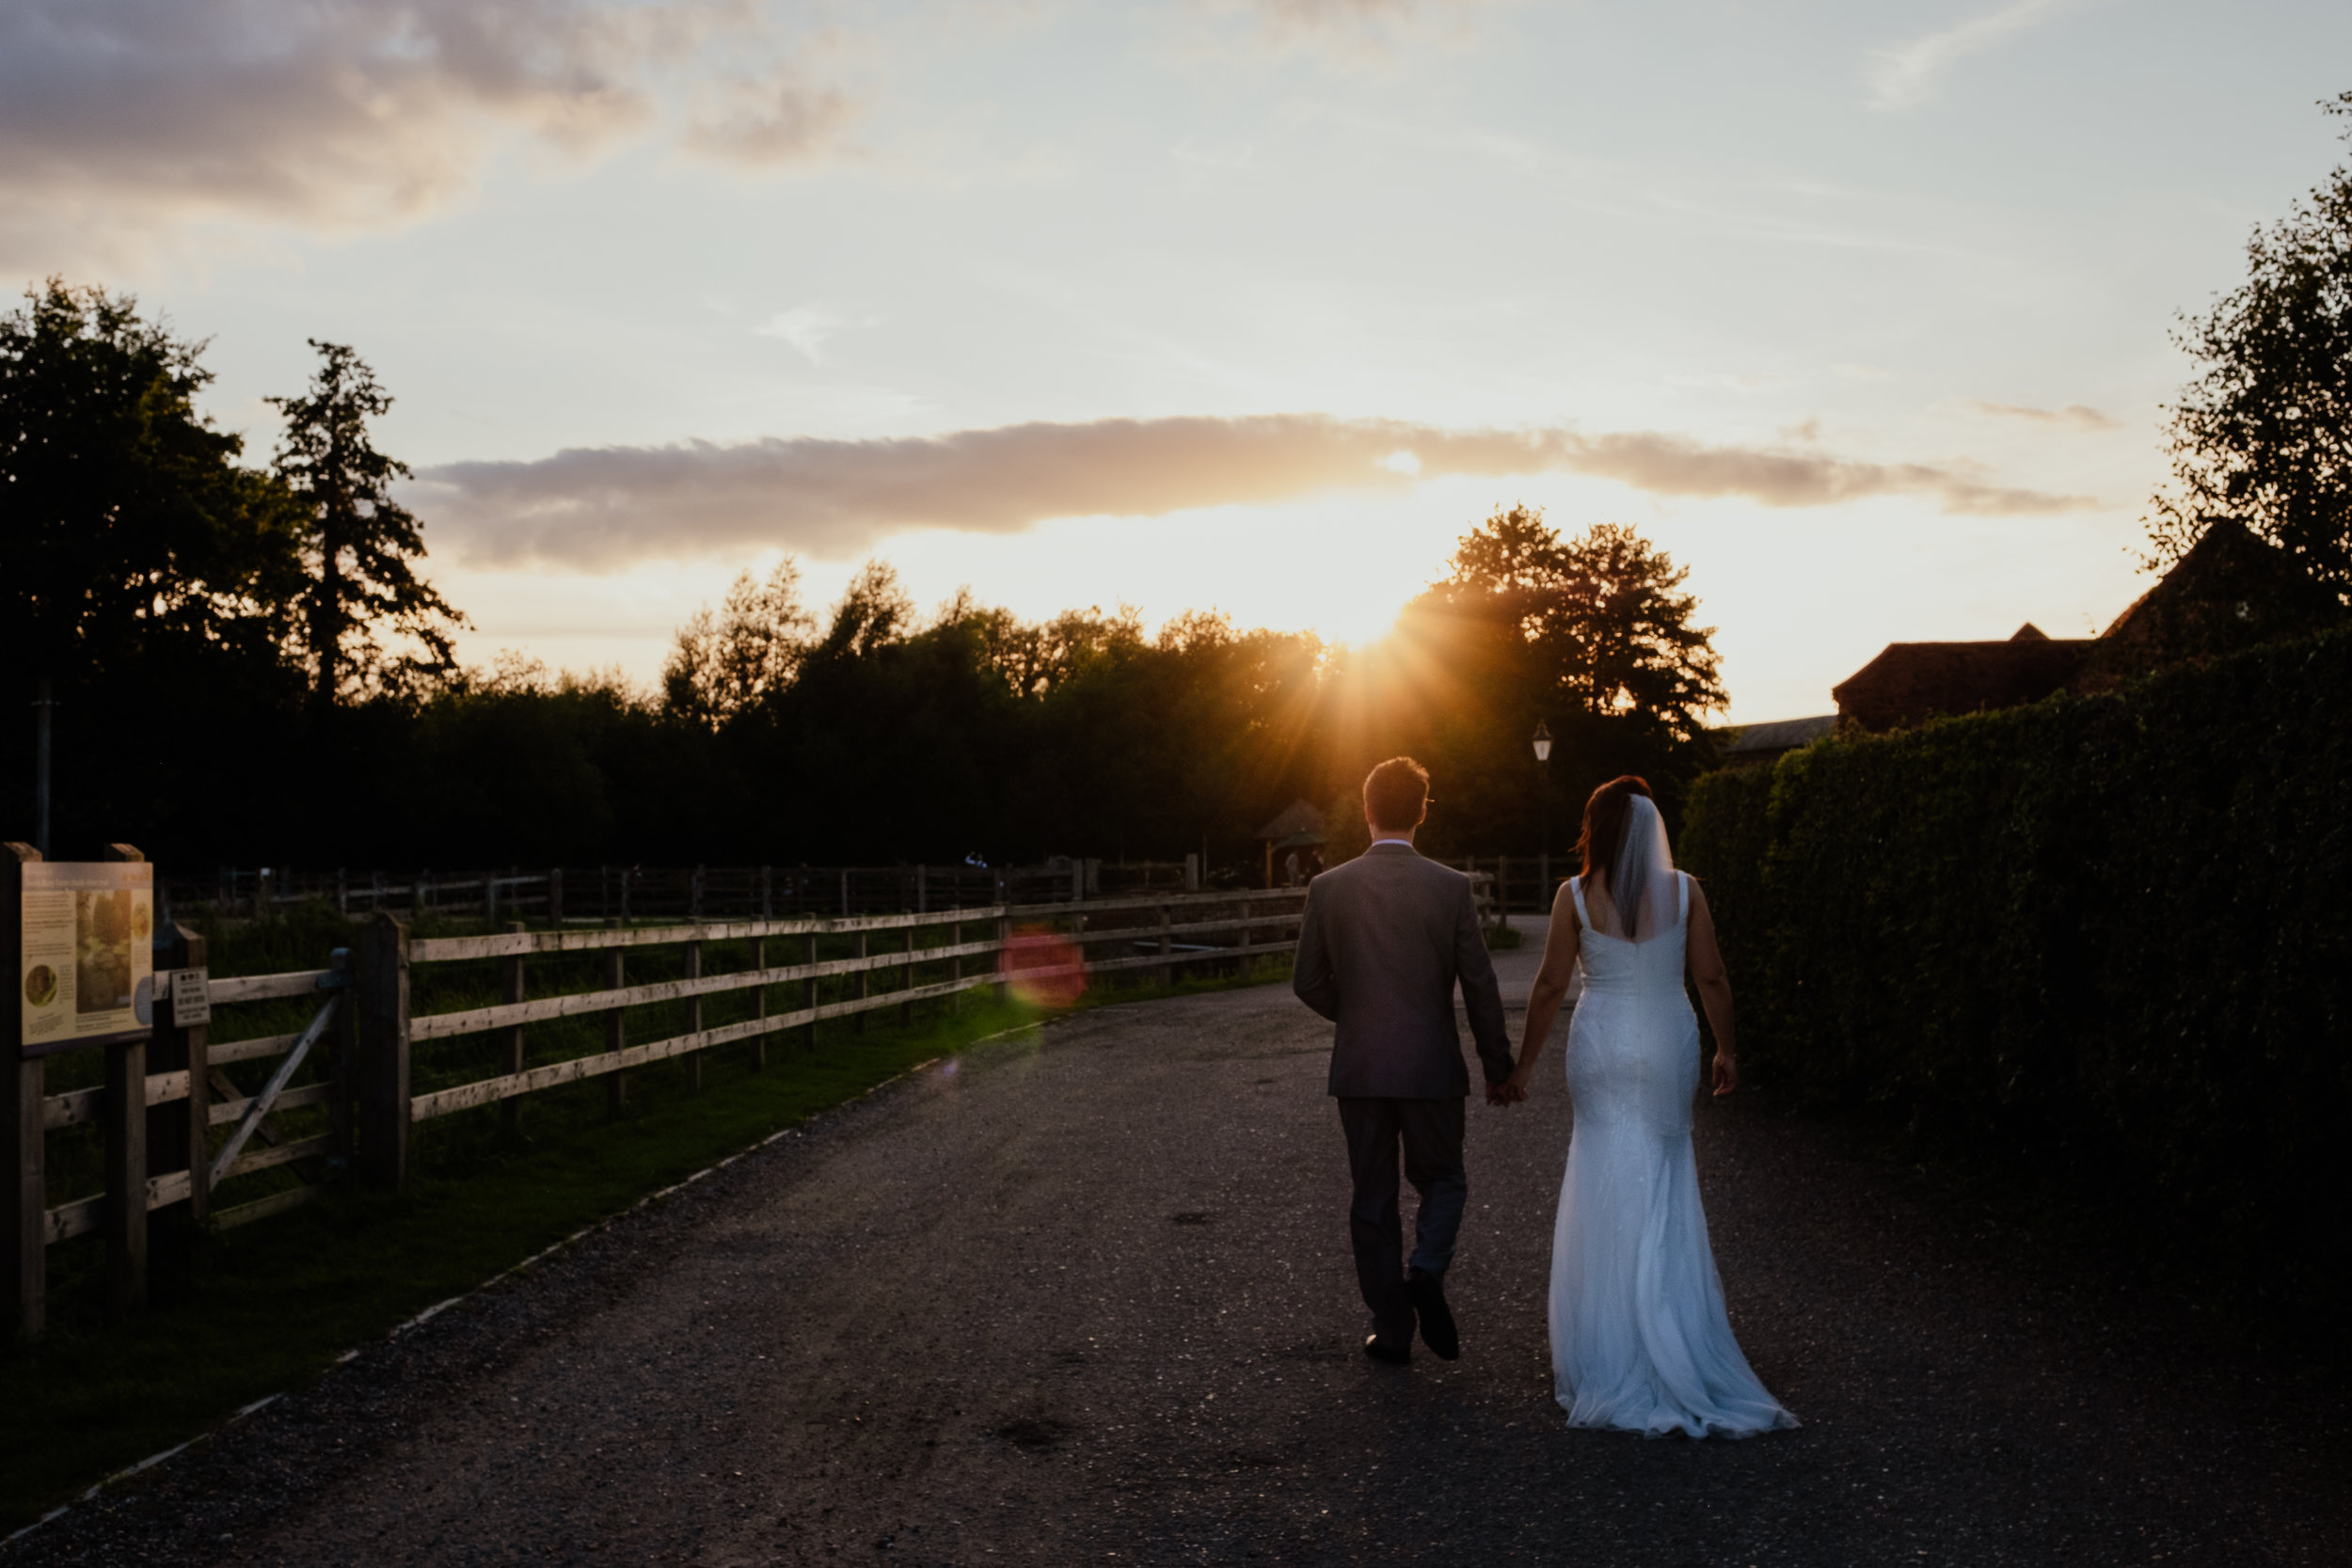 Bride and Groom walking towards the sunset at Tewin Bury Farm wedding